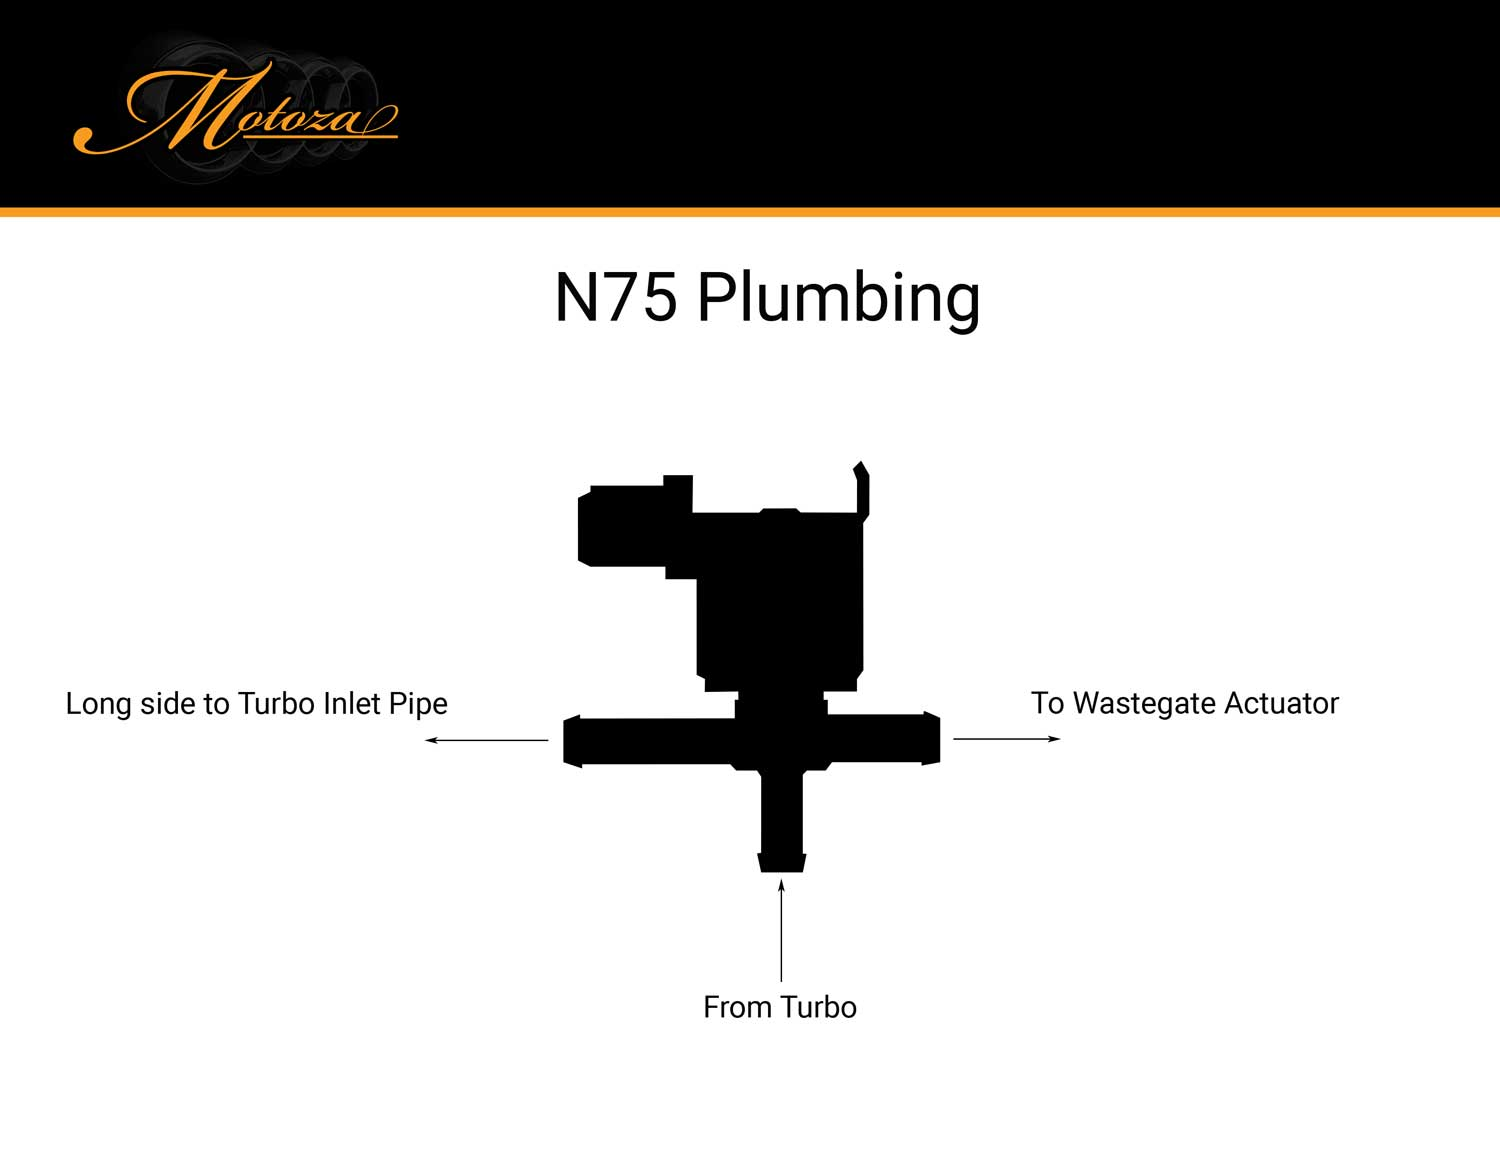 Testing And Plumbing Your N75 Valve